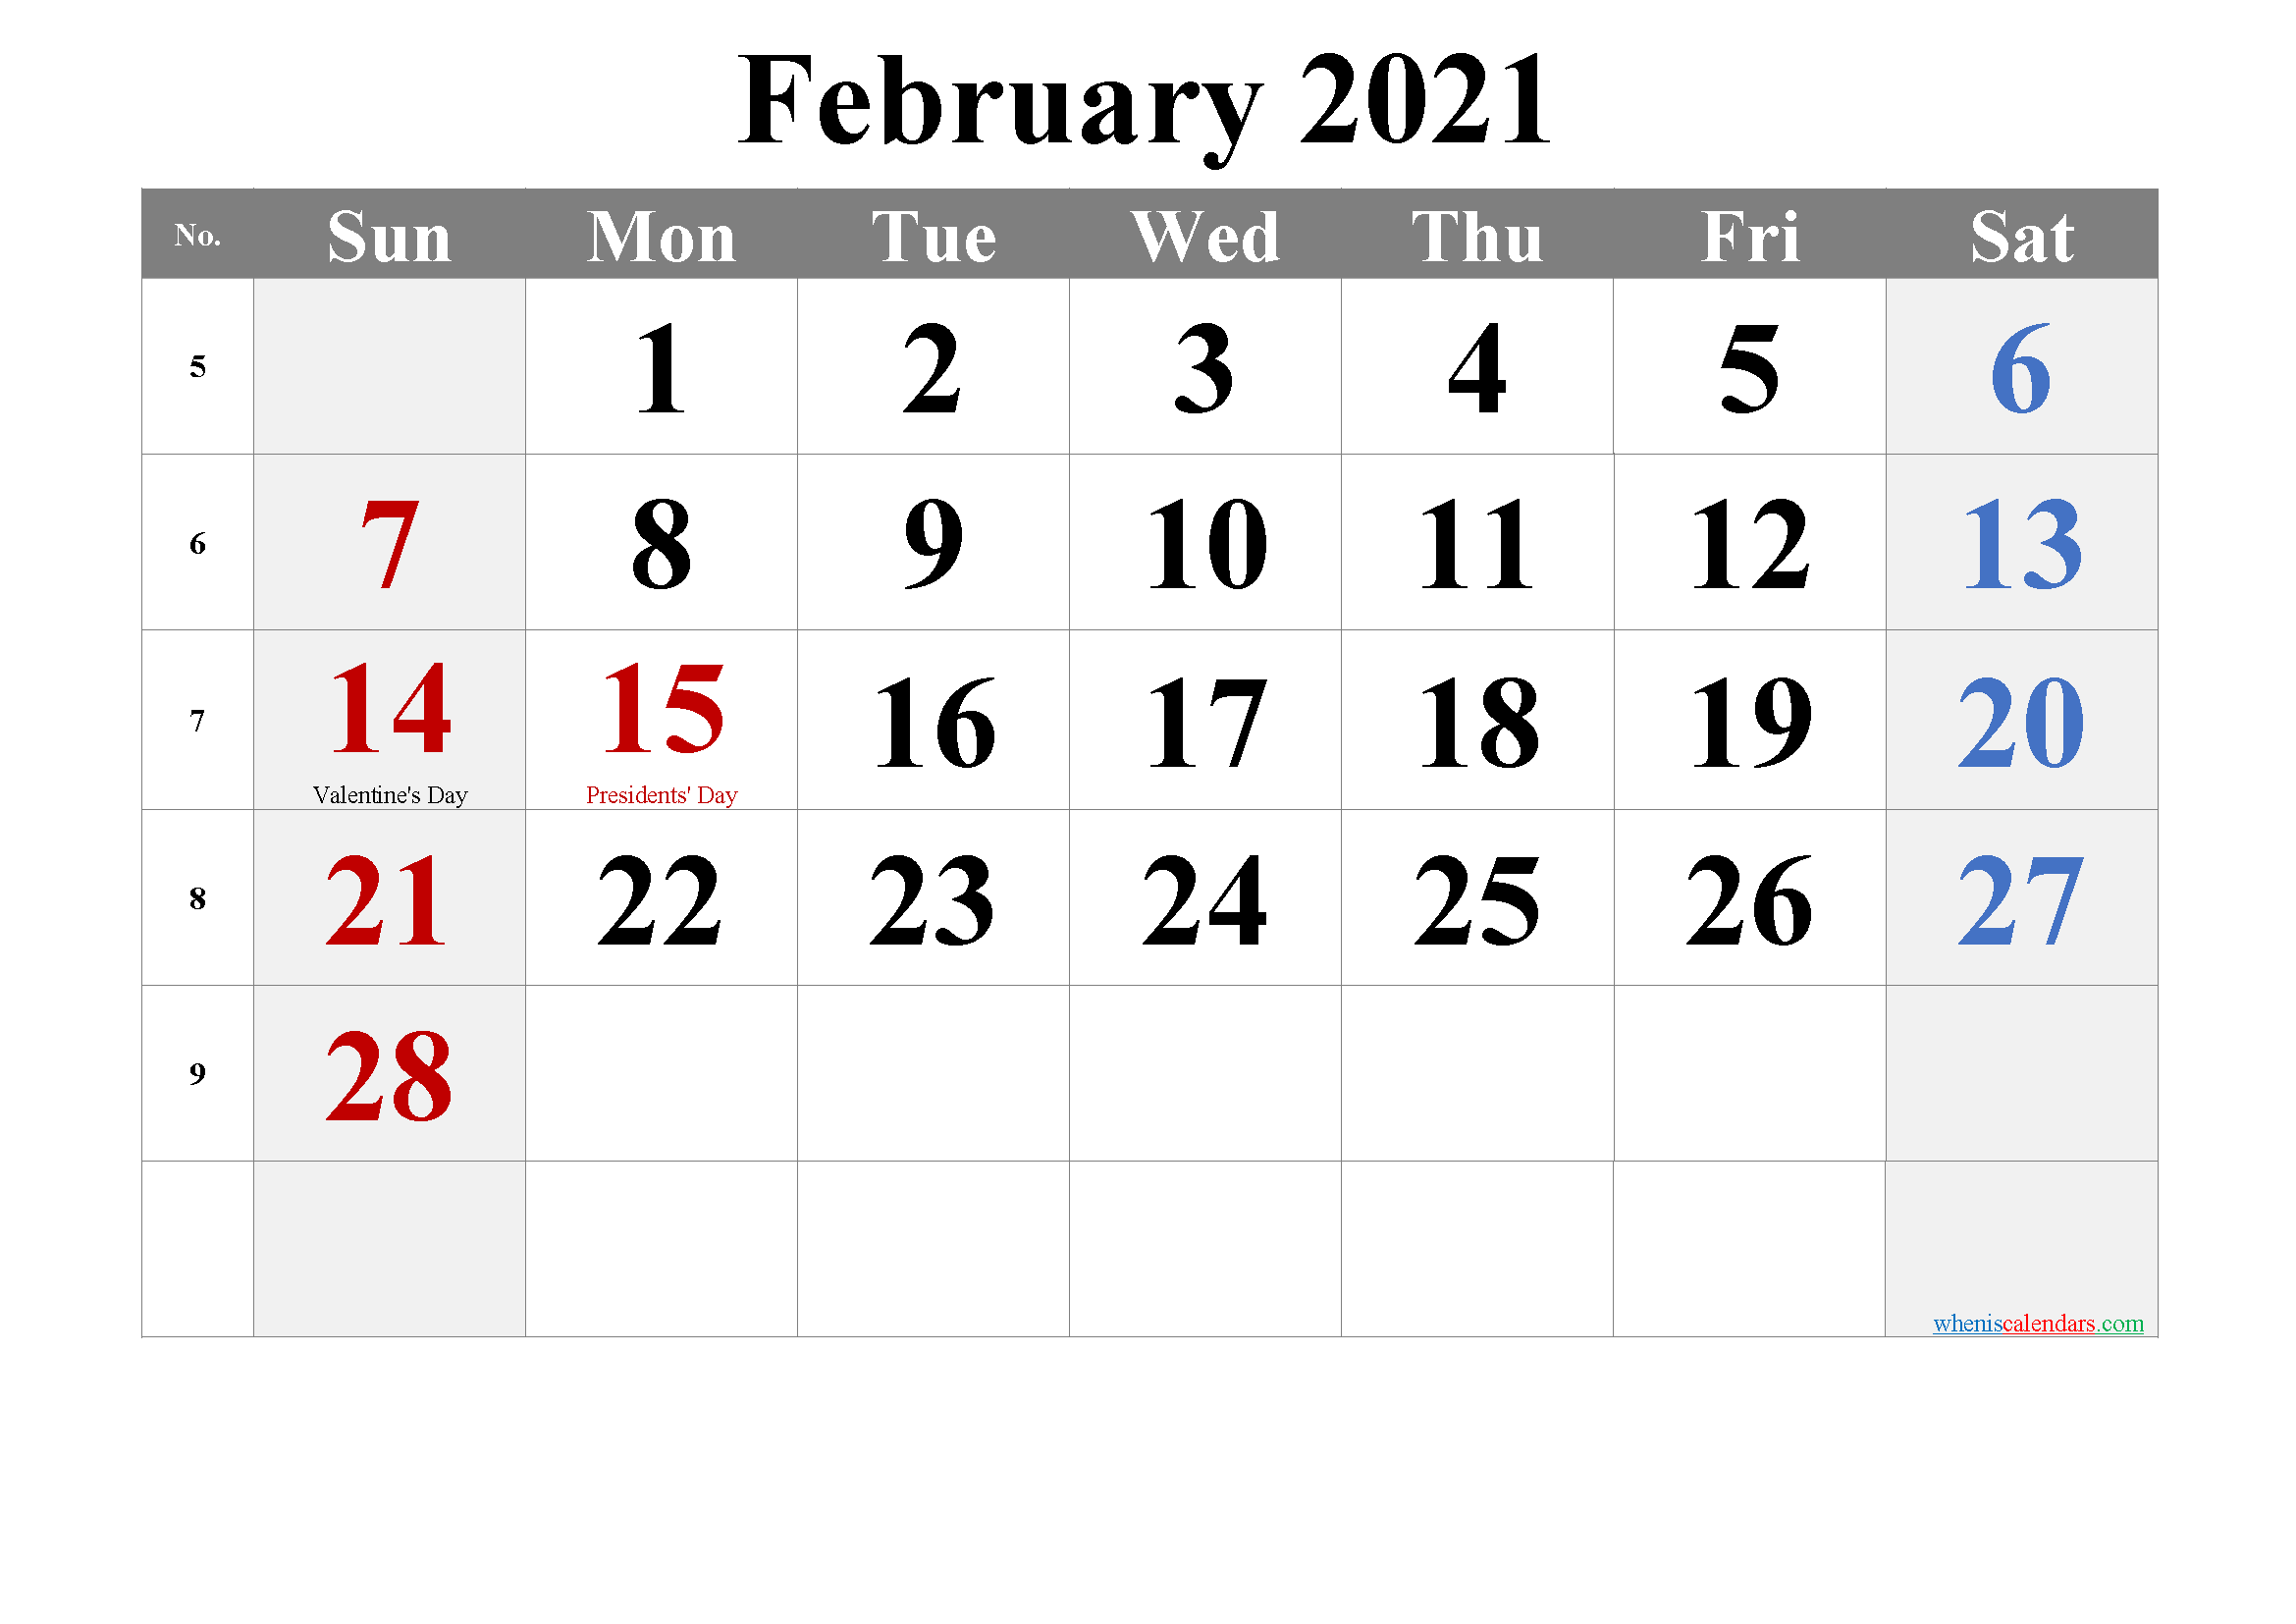 February 2021 Printable Calendar with Holidays